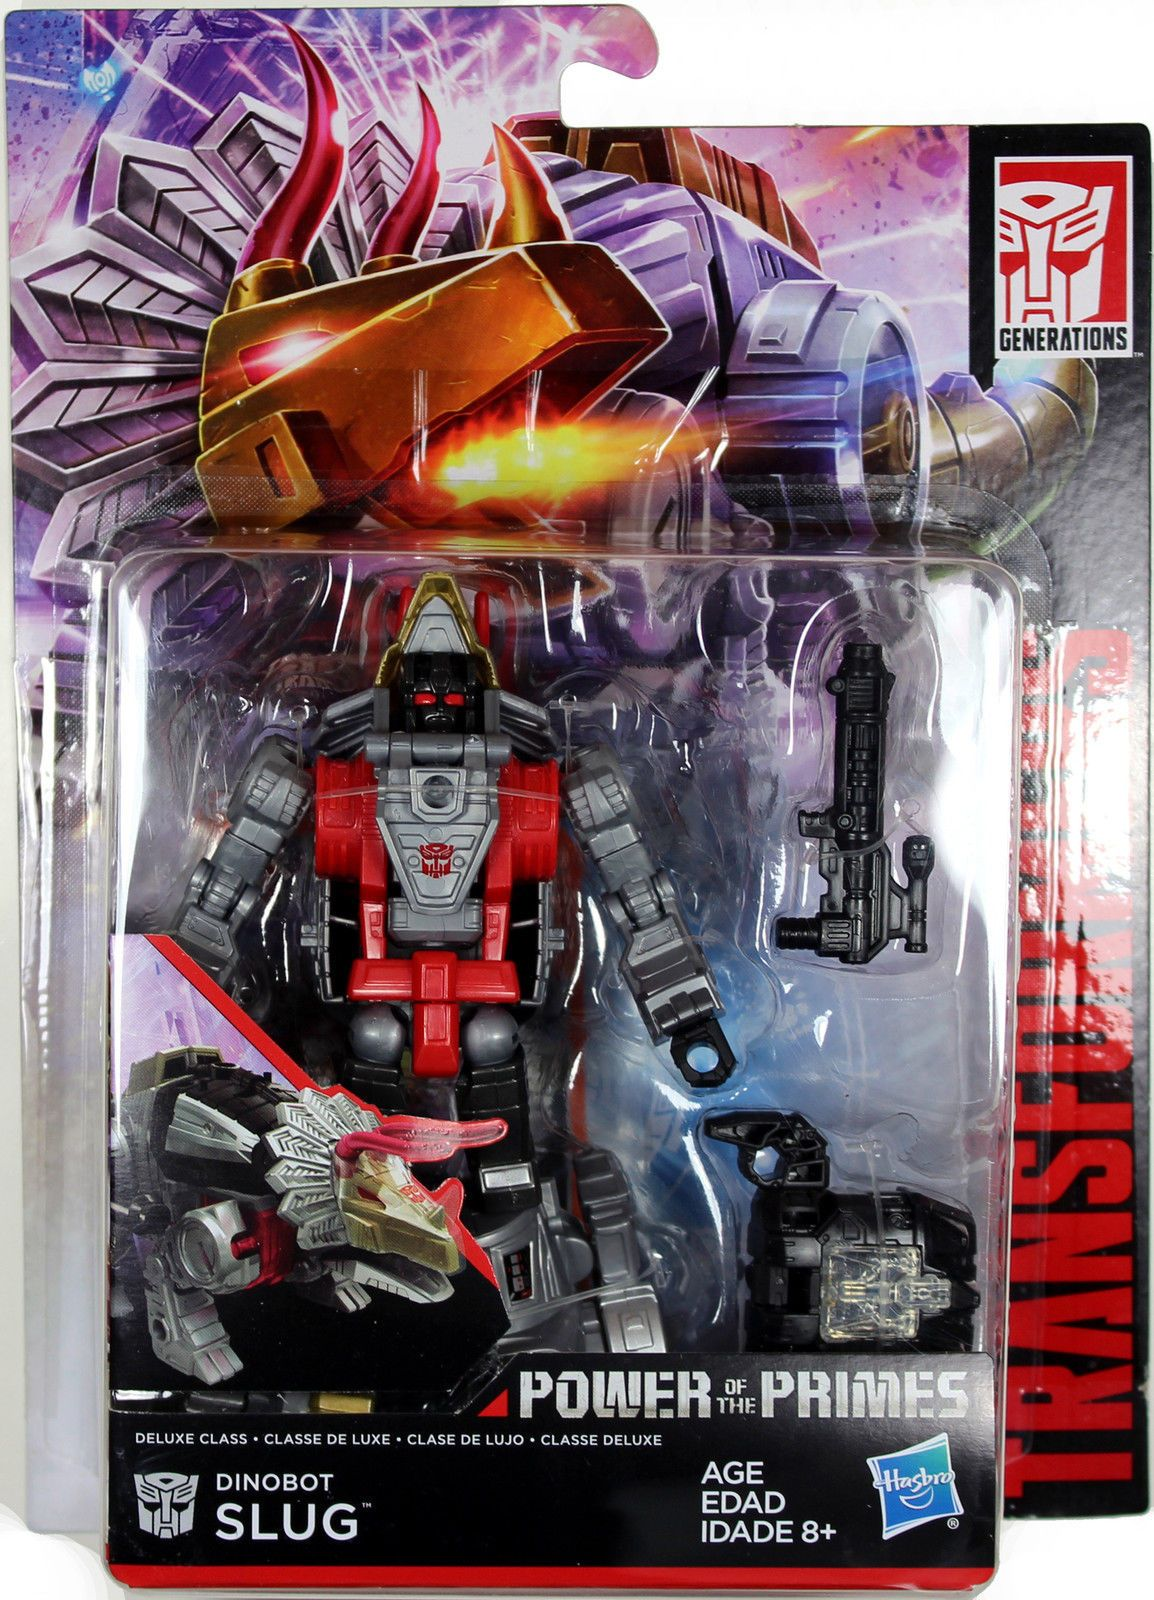 NO BOX TRANSFORMERS GENERATIONS POWER OF THE PRIMES DELUXE DINOBOT SLUG